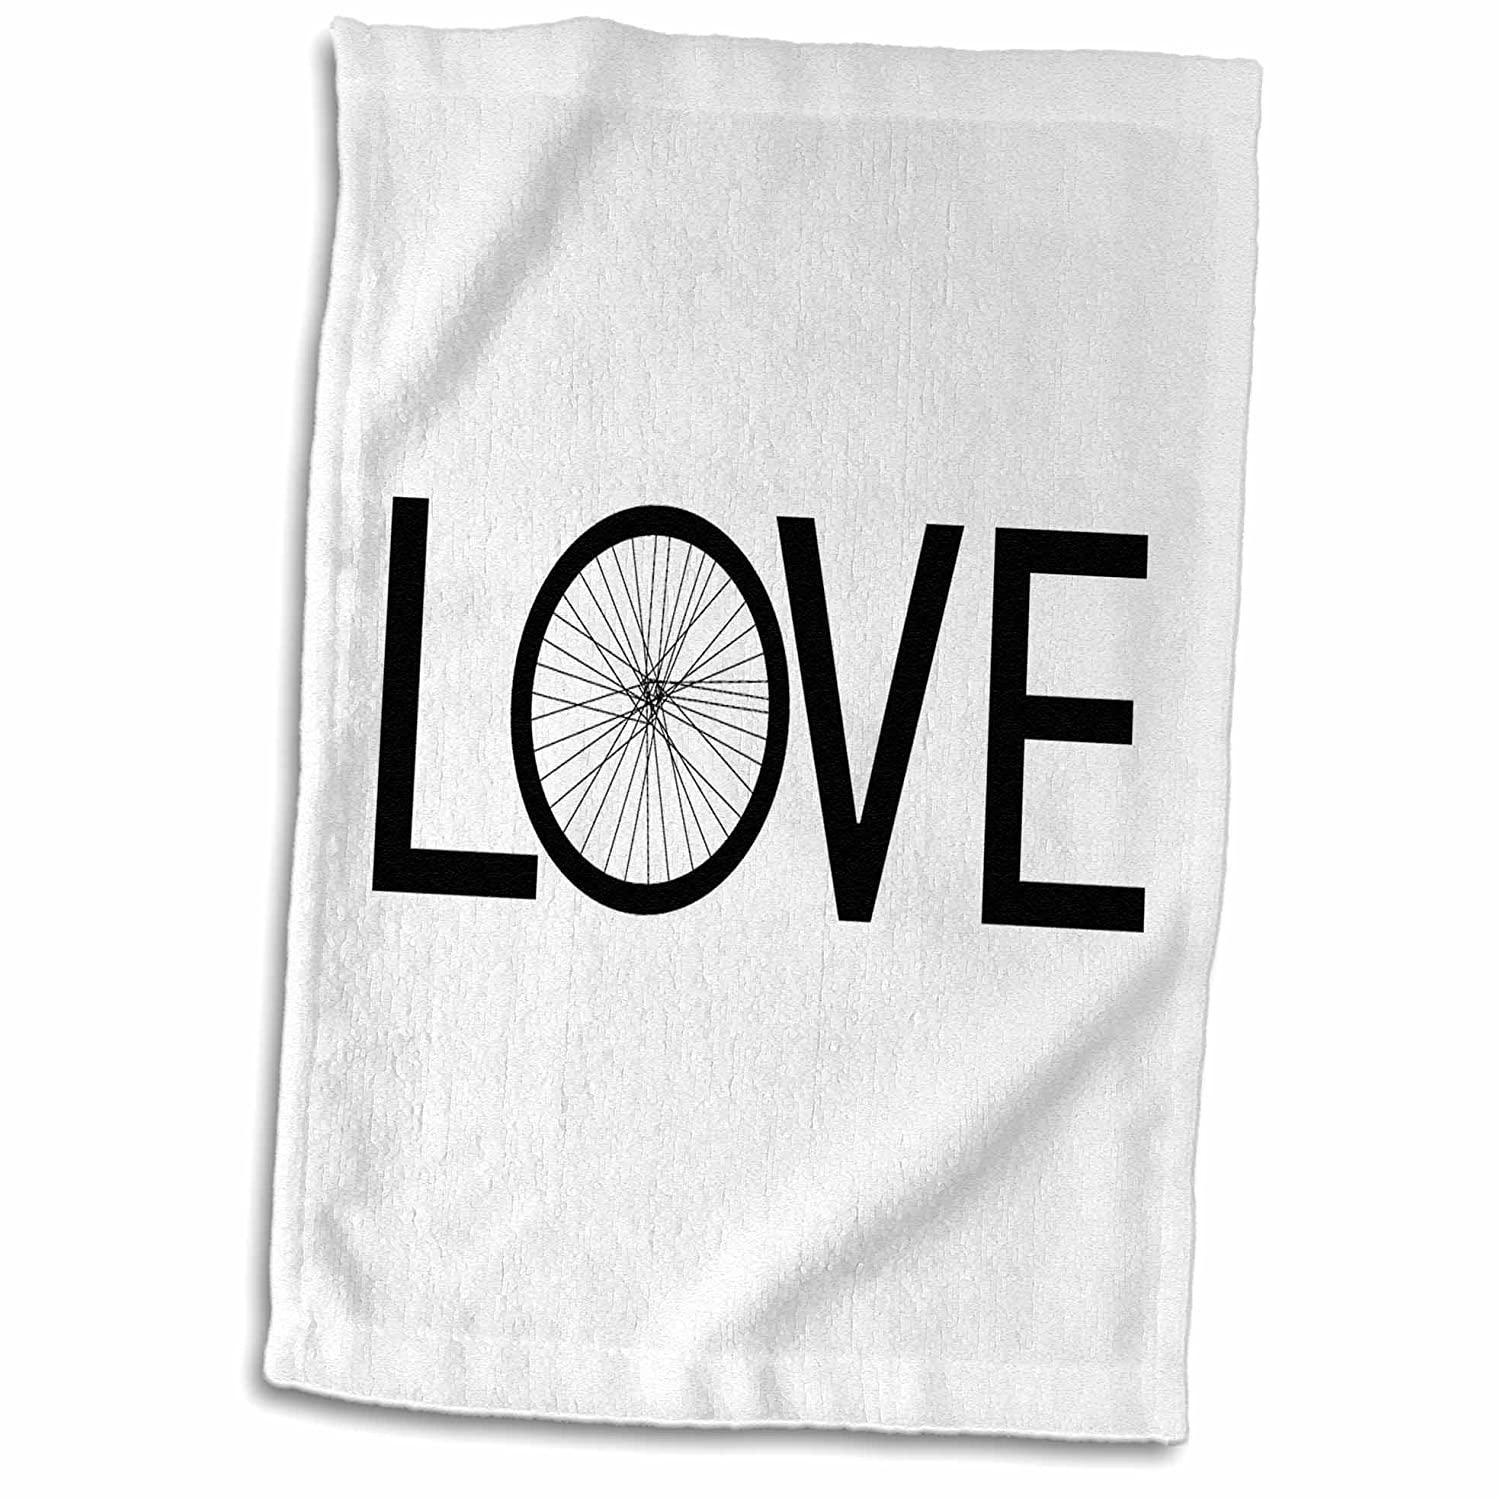 15 x 22 3D Rose Love Bicycles Black Text Bike Wheel O Cycler Typography Cycling TWL/_180464/_1 Towel